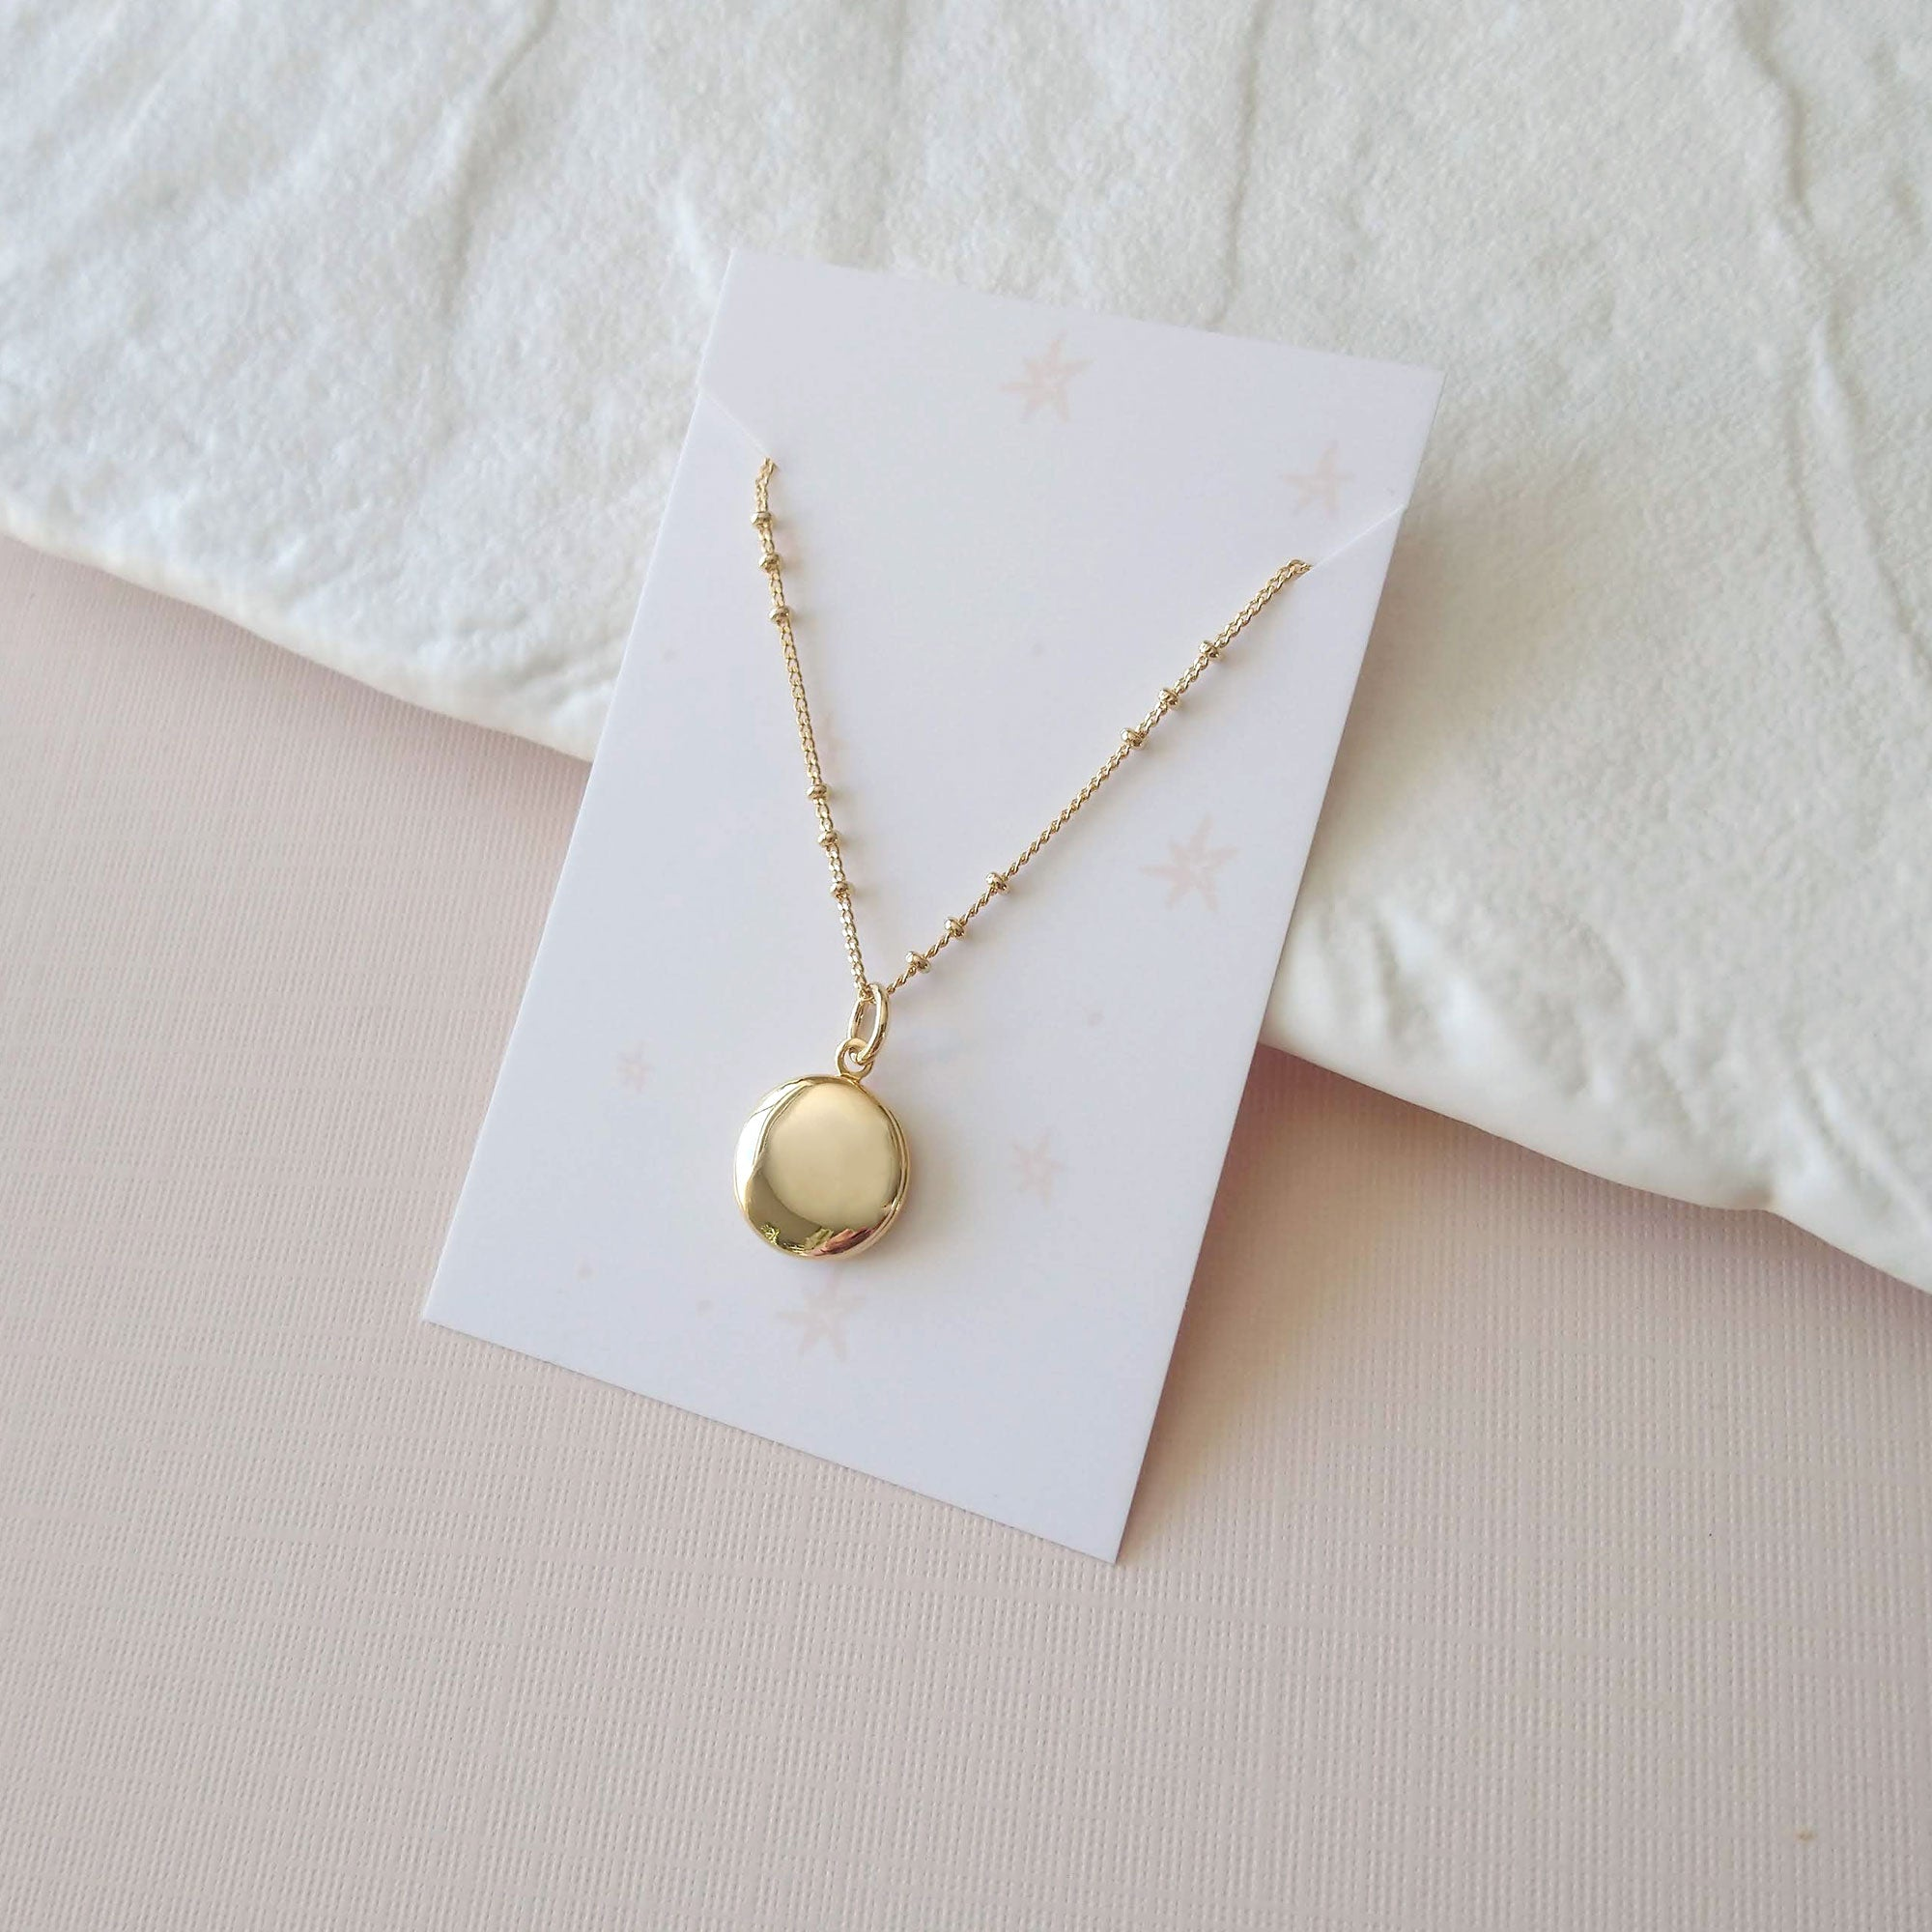 Tiny Round locket pendant chain